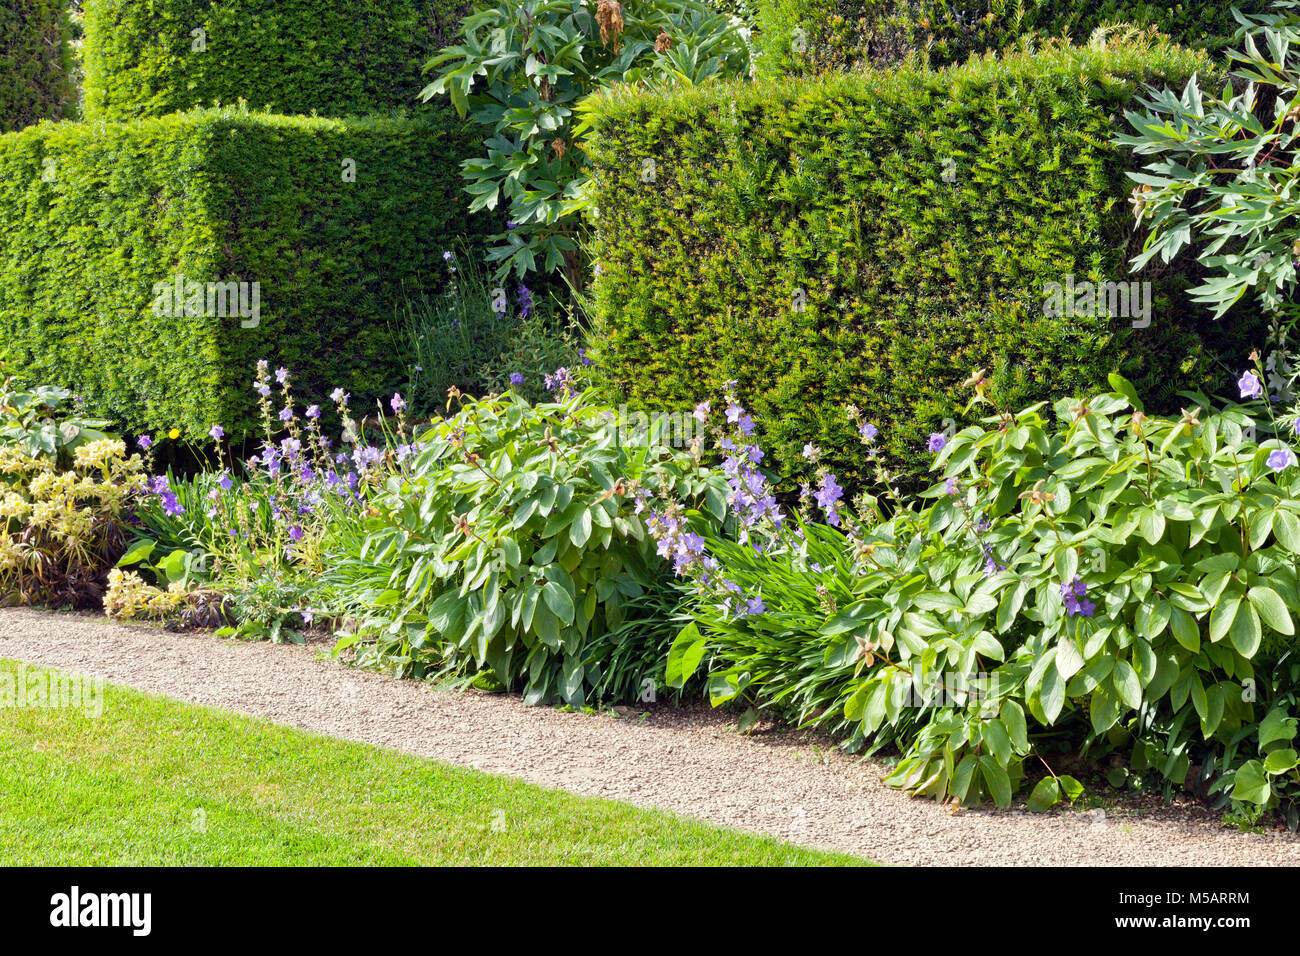 Trimmed yew hedge, flowering plants by a small stone path and lawn, in a summer English garden . - Stock Image